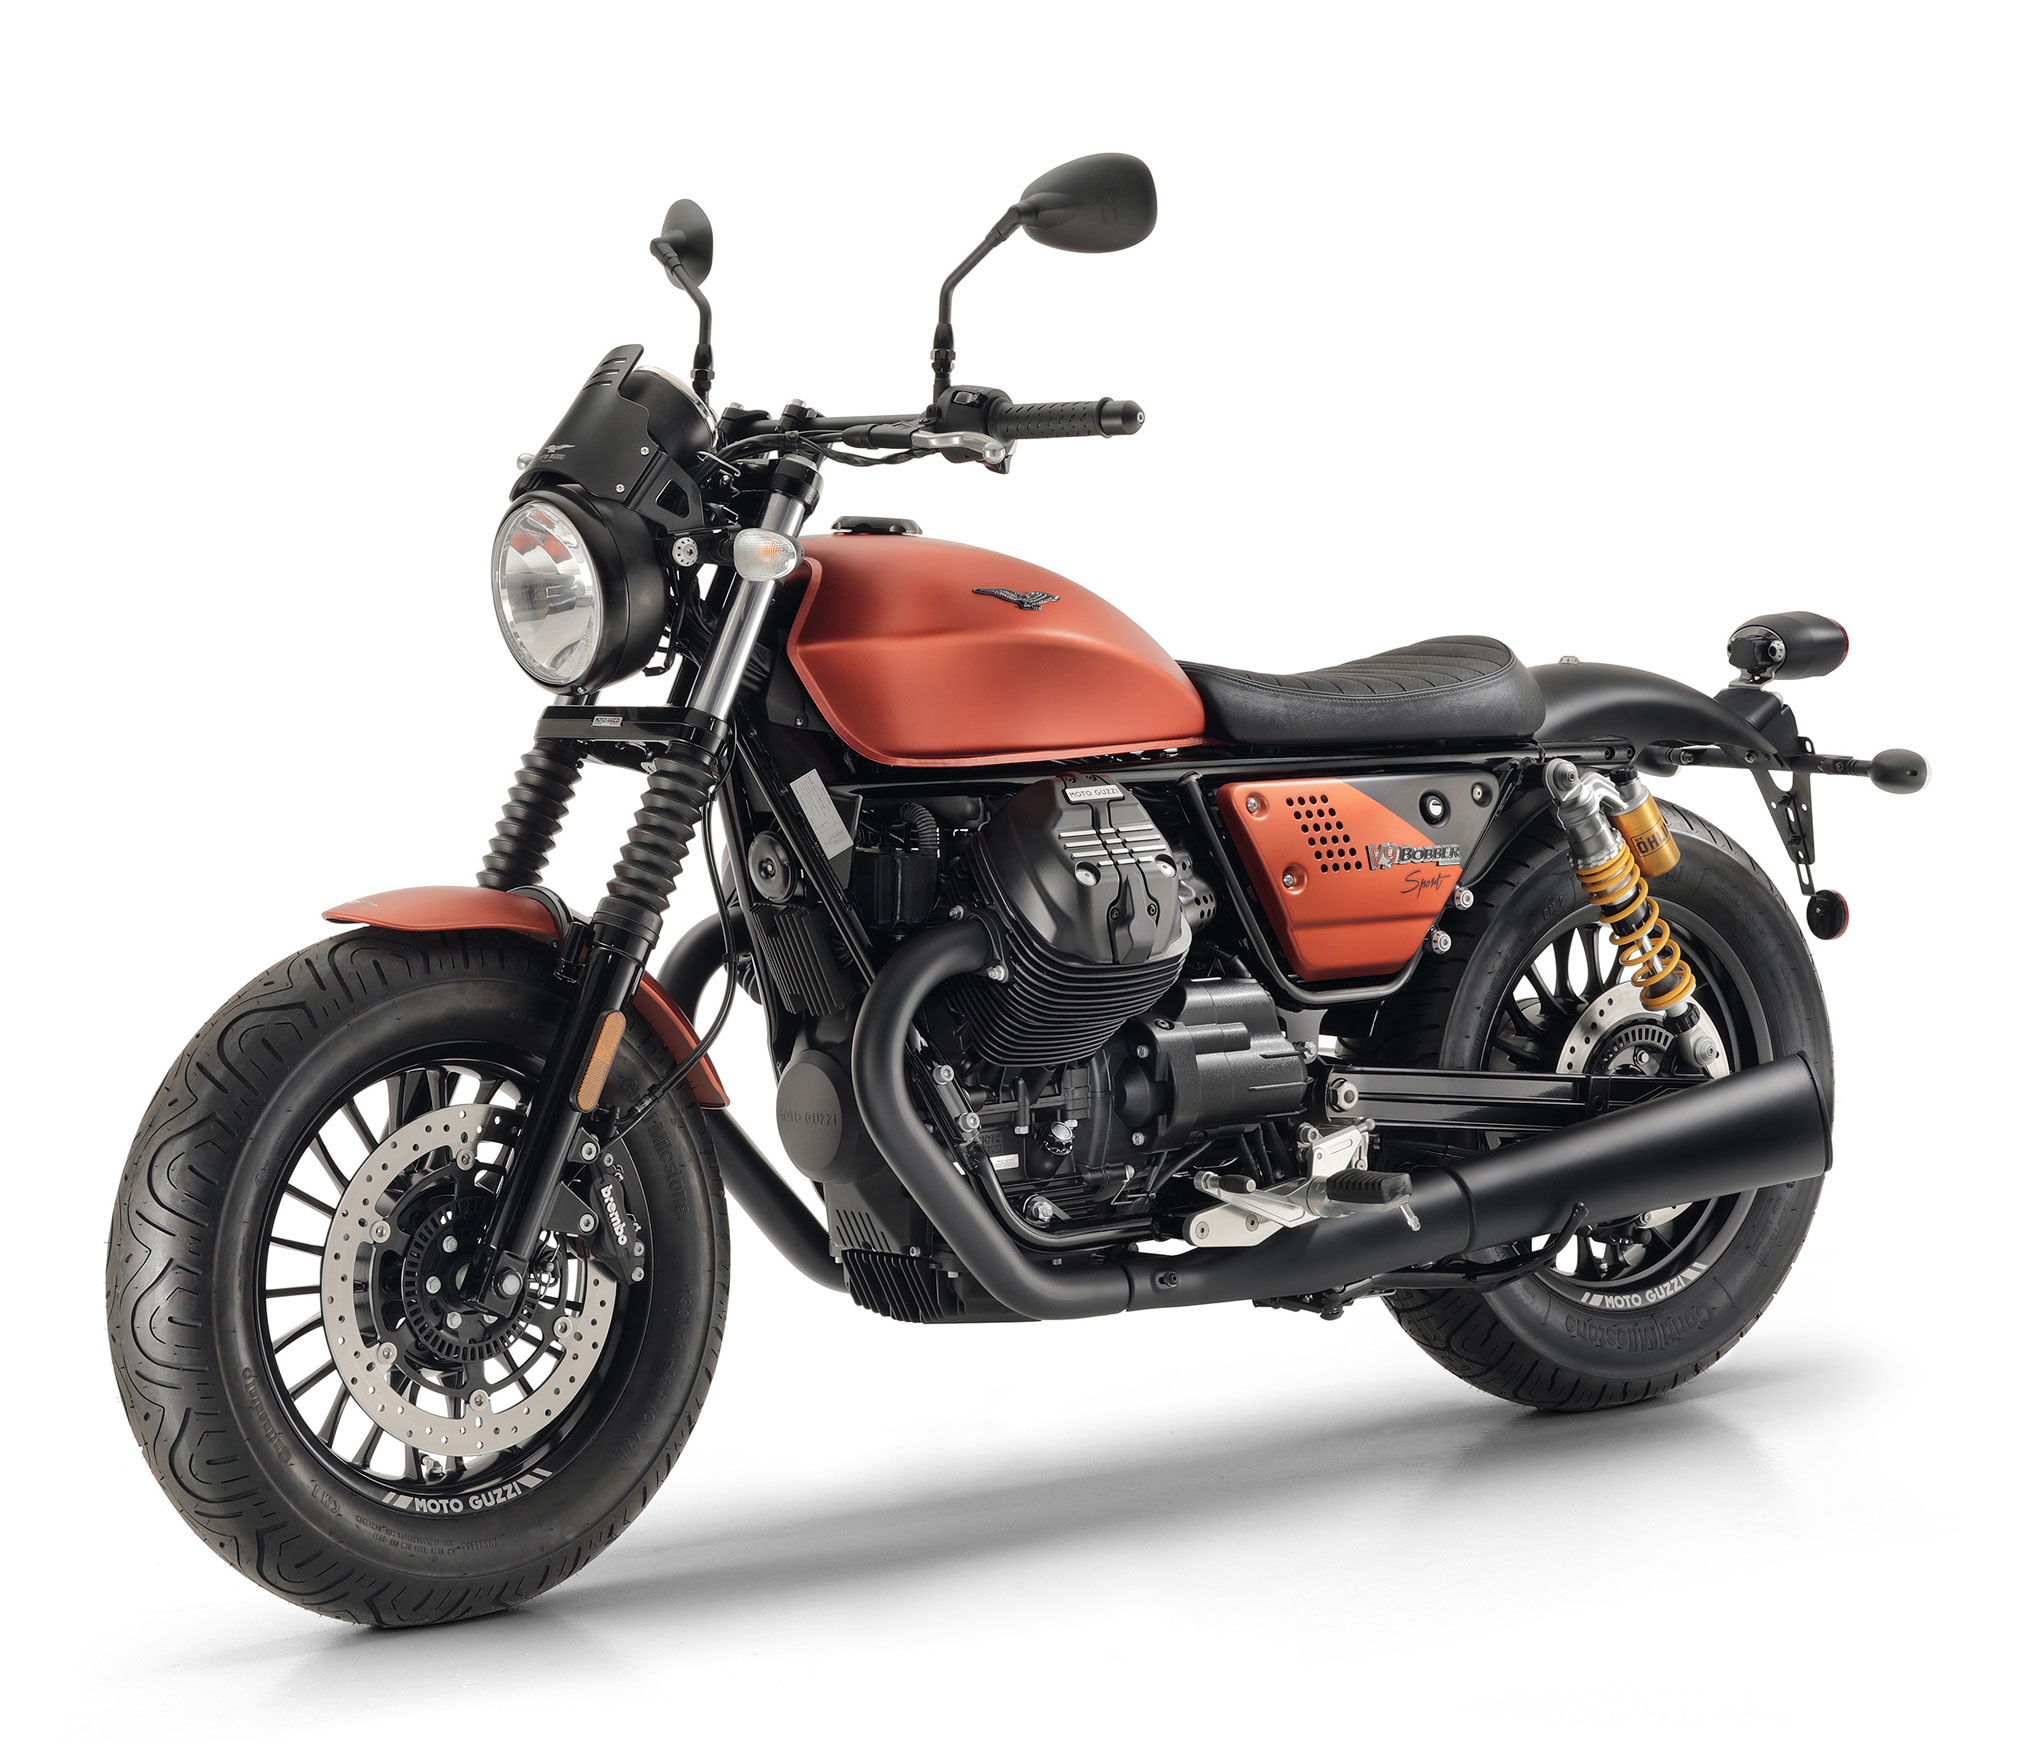 2019 moto guzzi v9 bobber sport guide totalmotorcycle. Black Bedroom Furniture Sets. Home Design Ideas